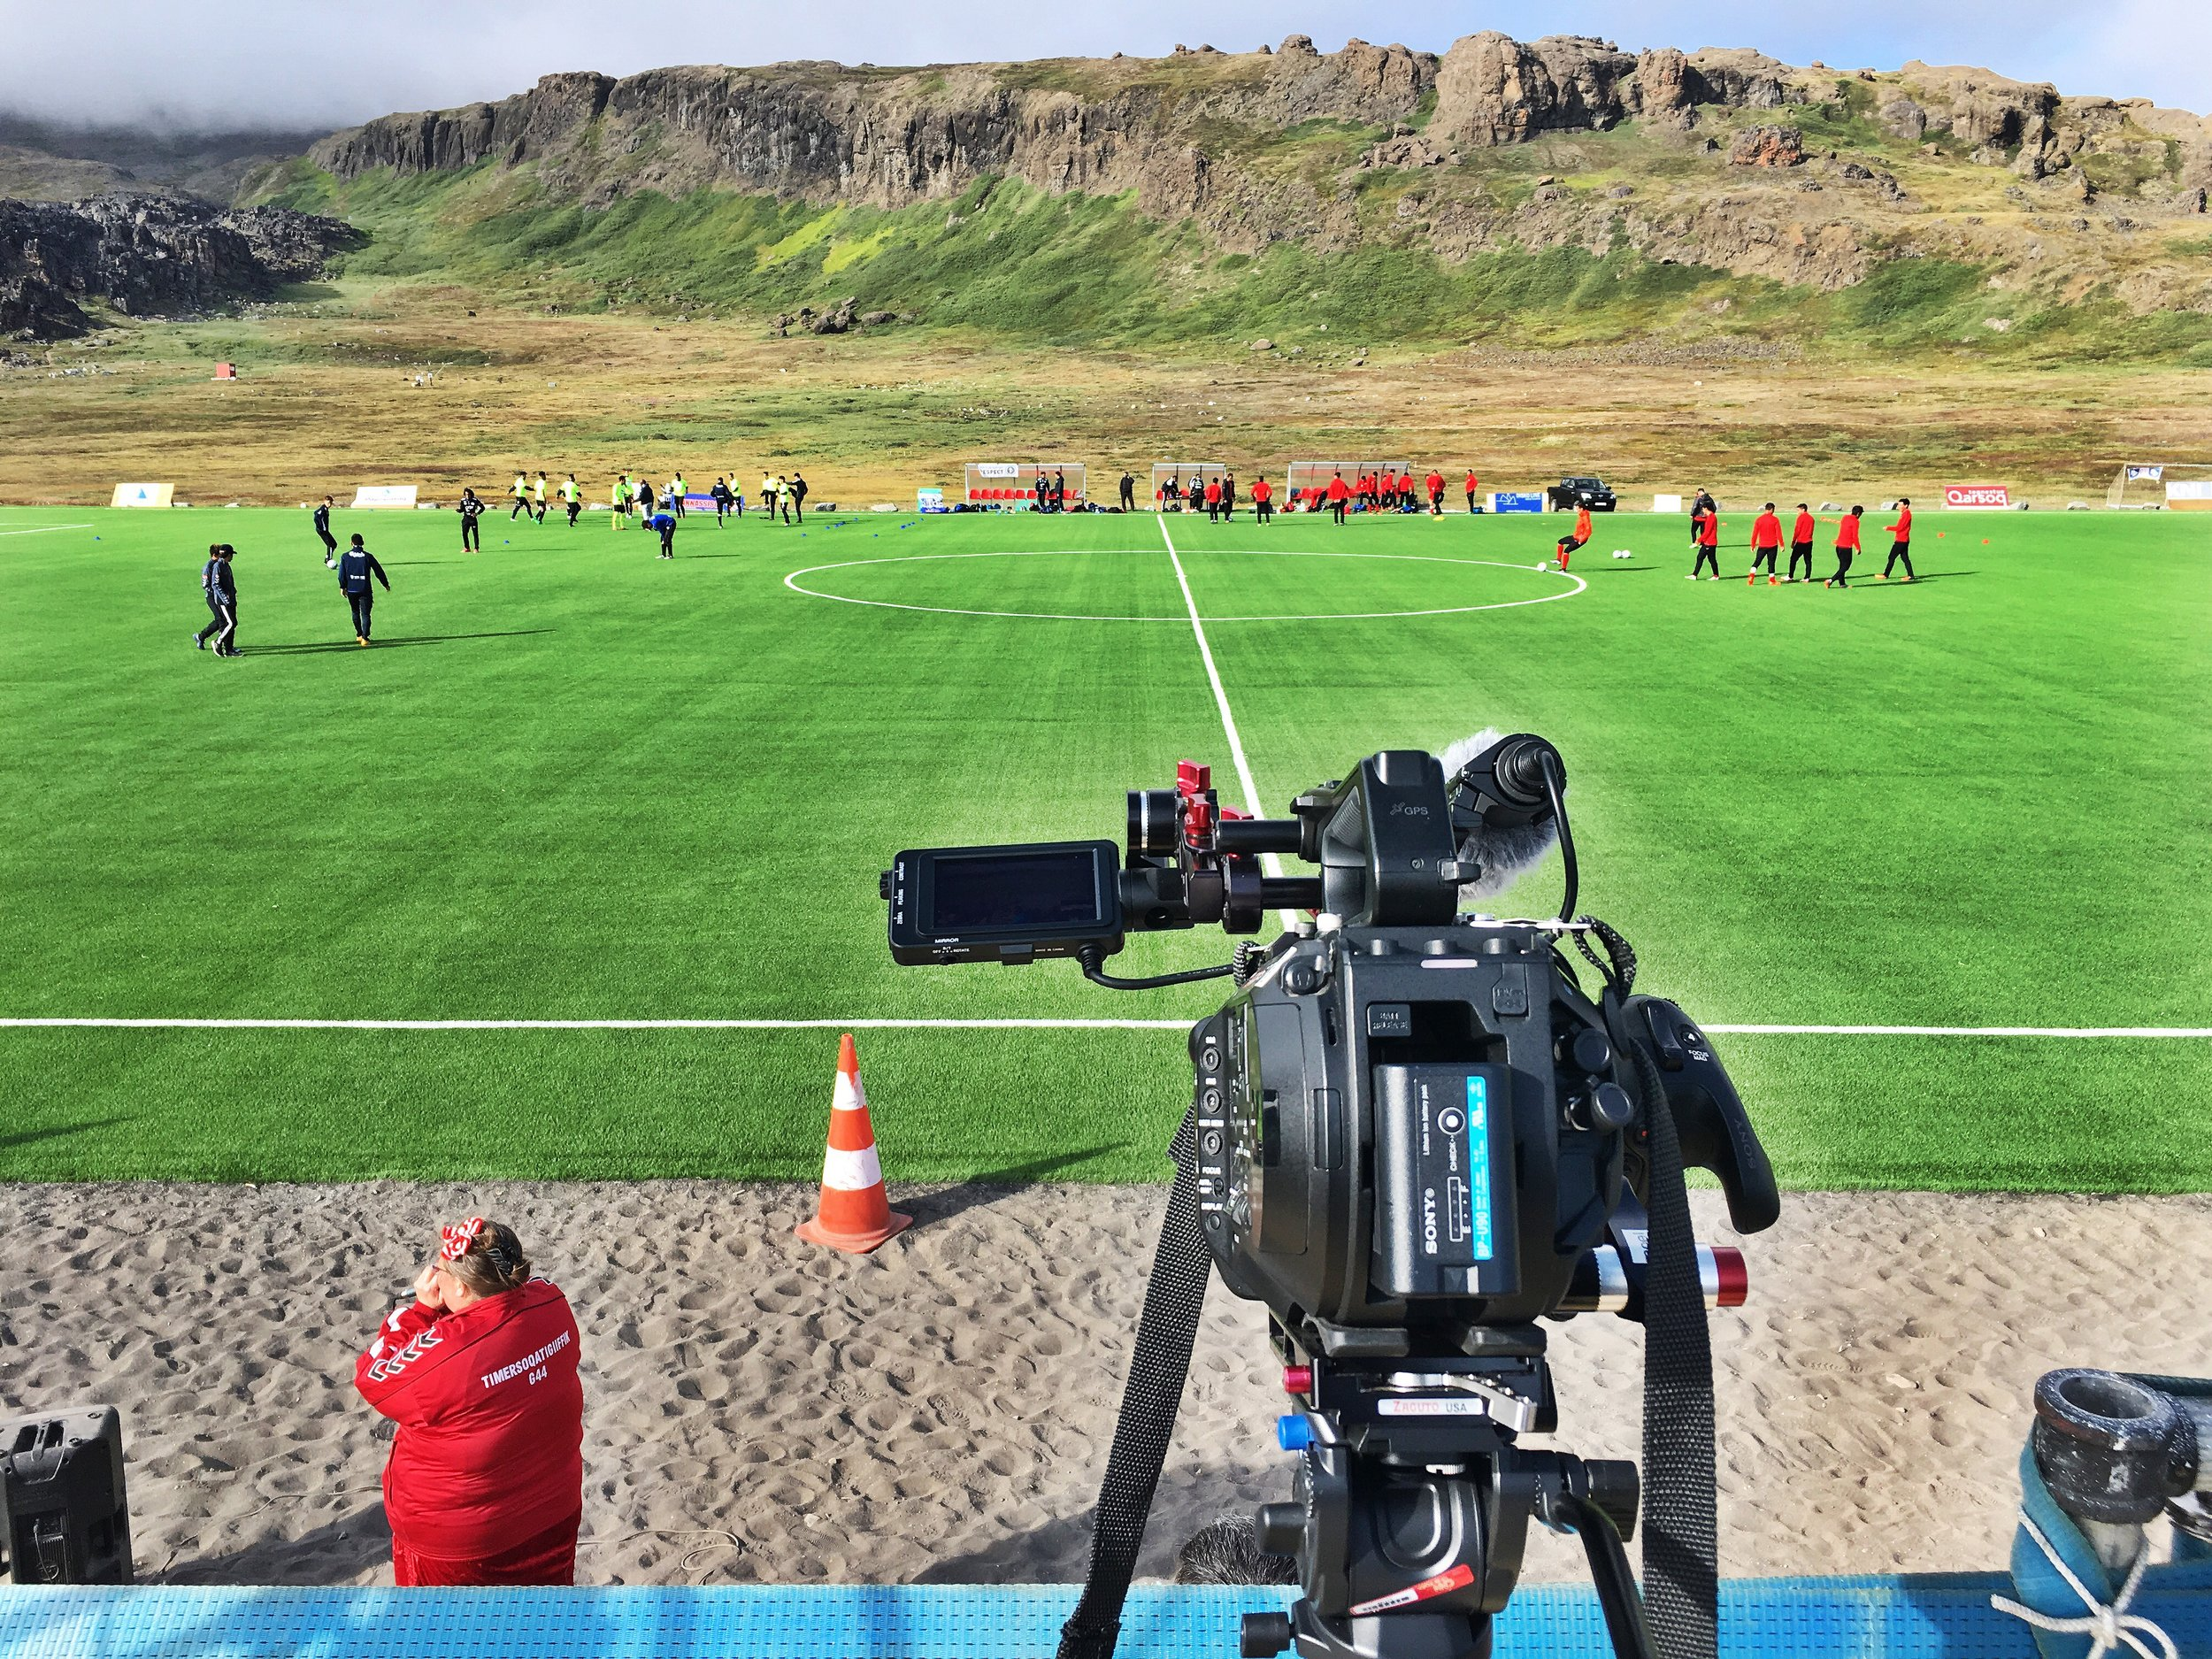 The Greenlandic Men's Championship semi-finals: G44 from Qeqertarsuaq and tournament favourites and last year's champions B67.